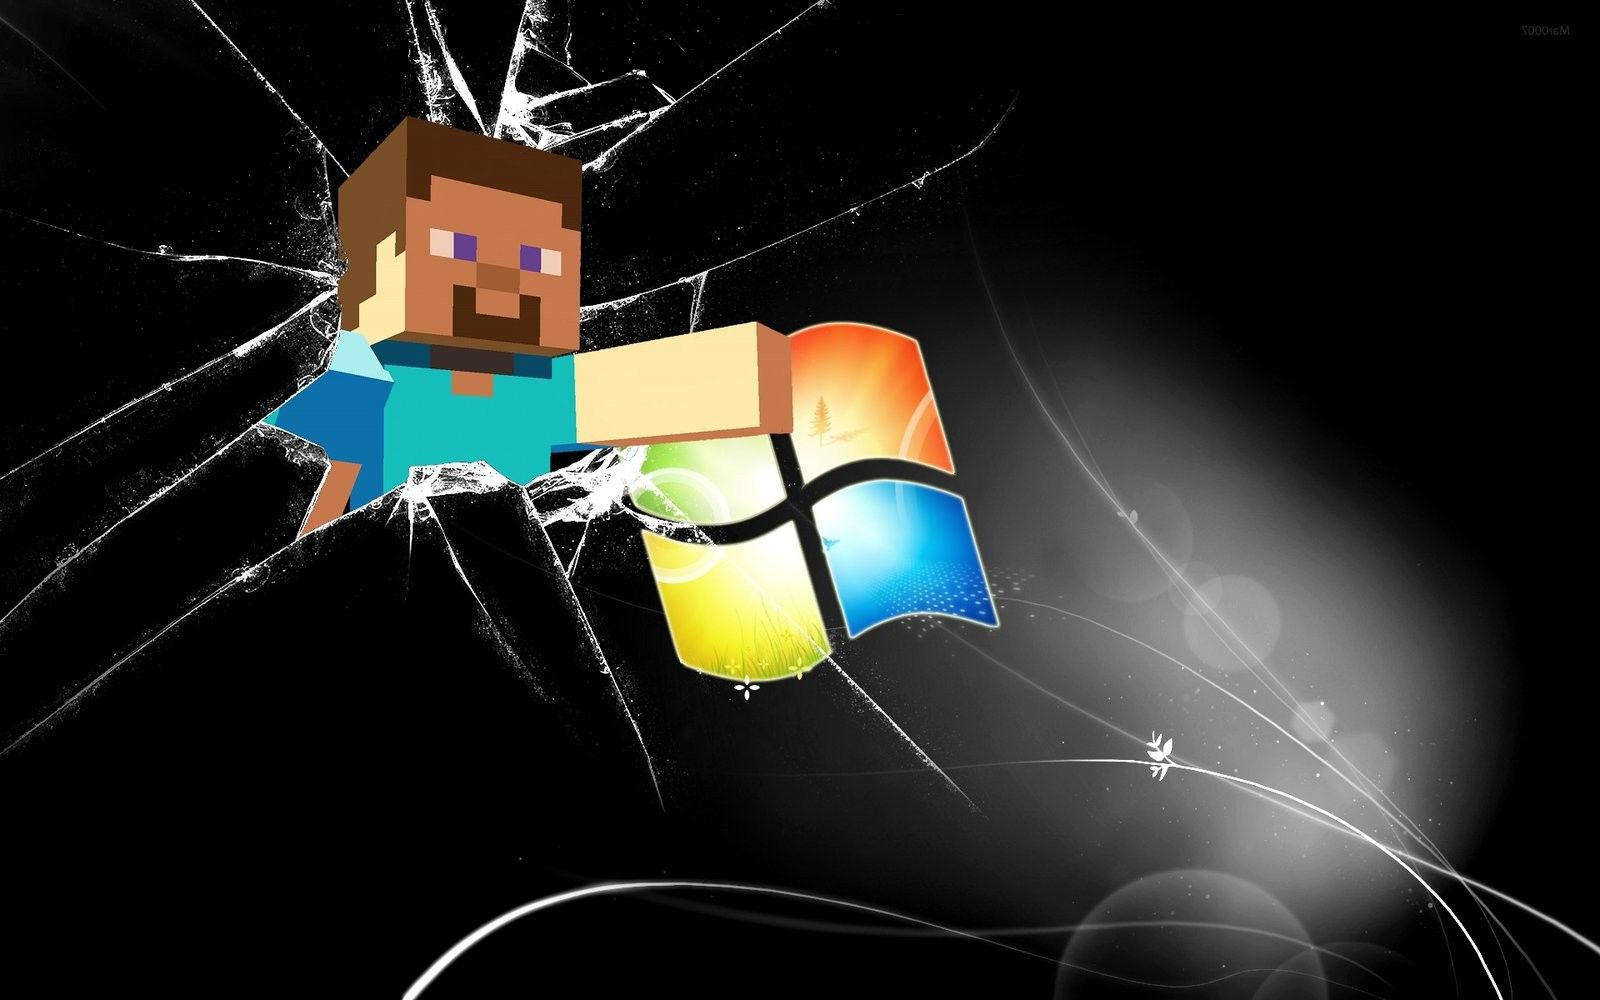 Must see Wallpaper Minecraft Windows 7 - 4a0d37c86e196ed2fc3adfebe089b92d  Photograph_87089.jpg